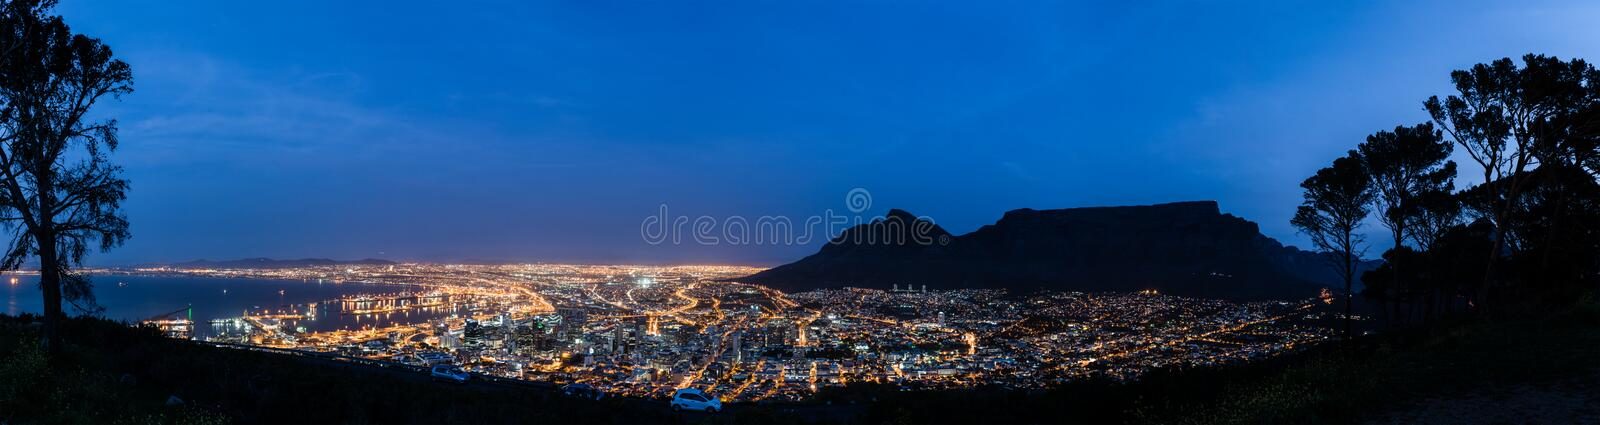 Einsam in Cape Town stockbild